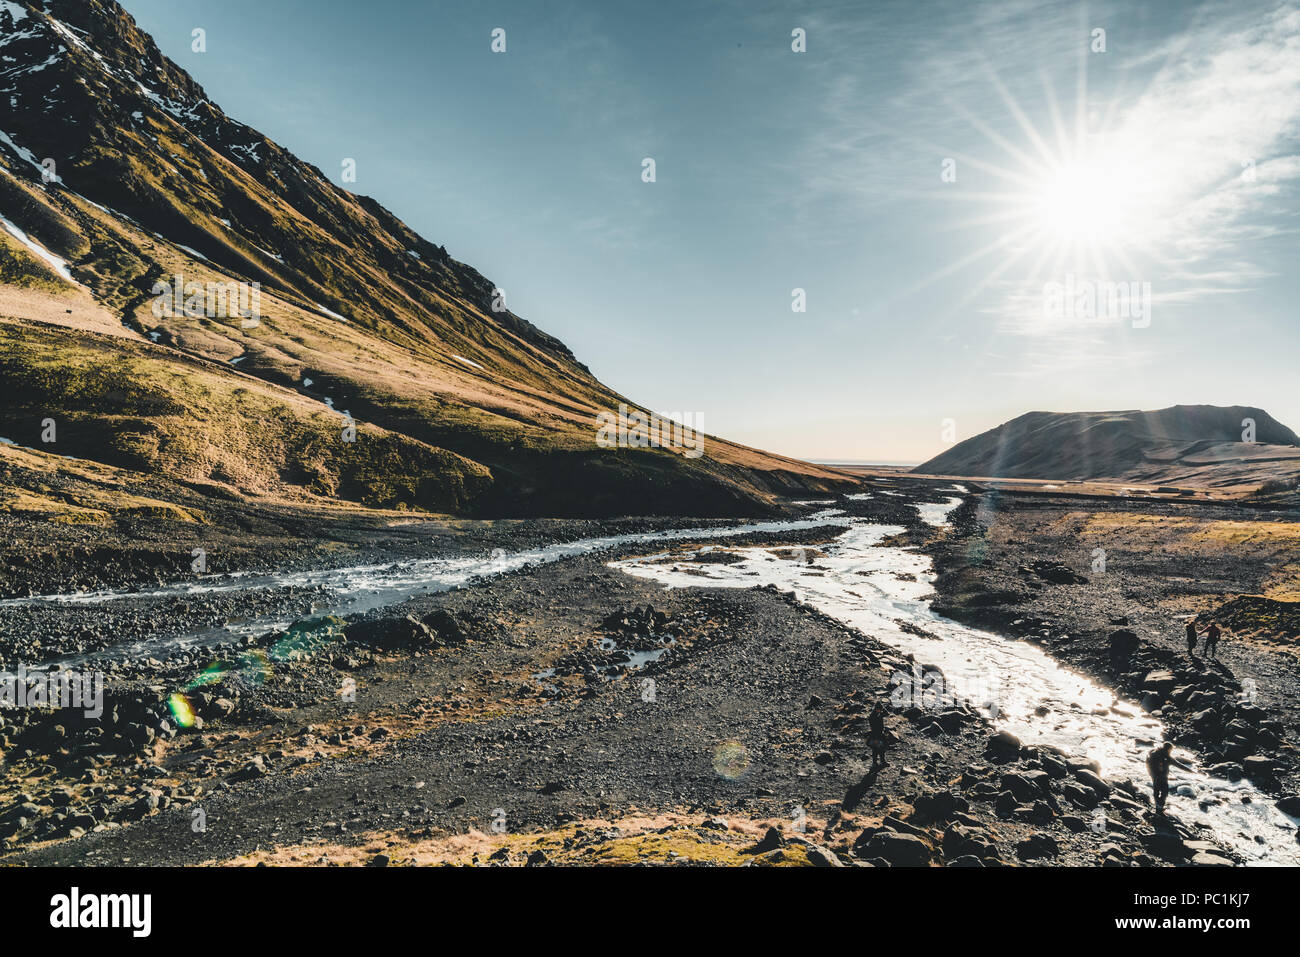 Iceland Fantastic views of the landscape with river and mountain with blue sky on a sunny day. - Stock Image